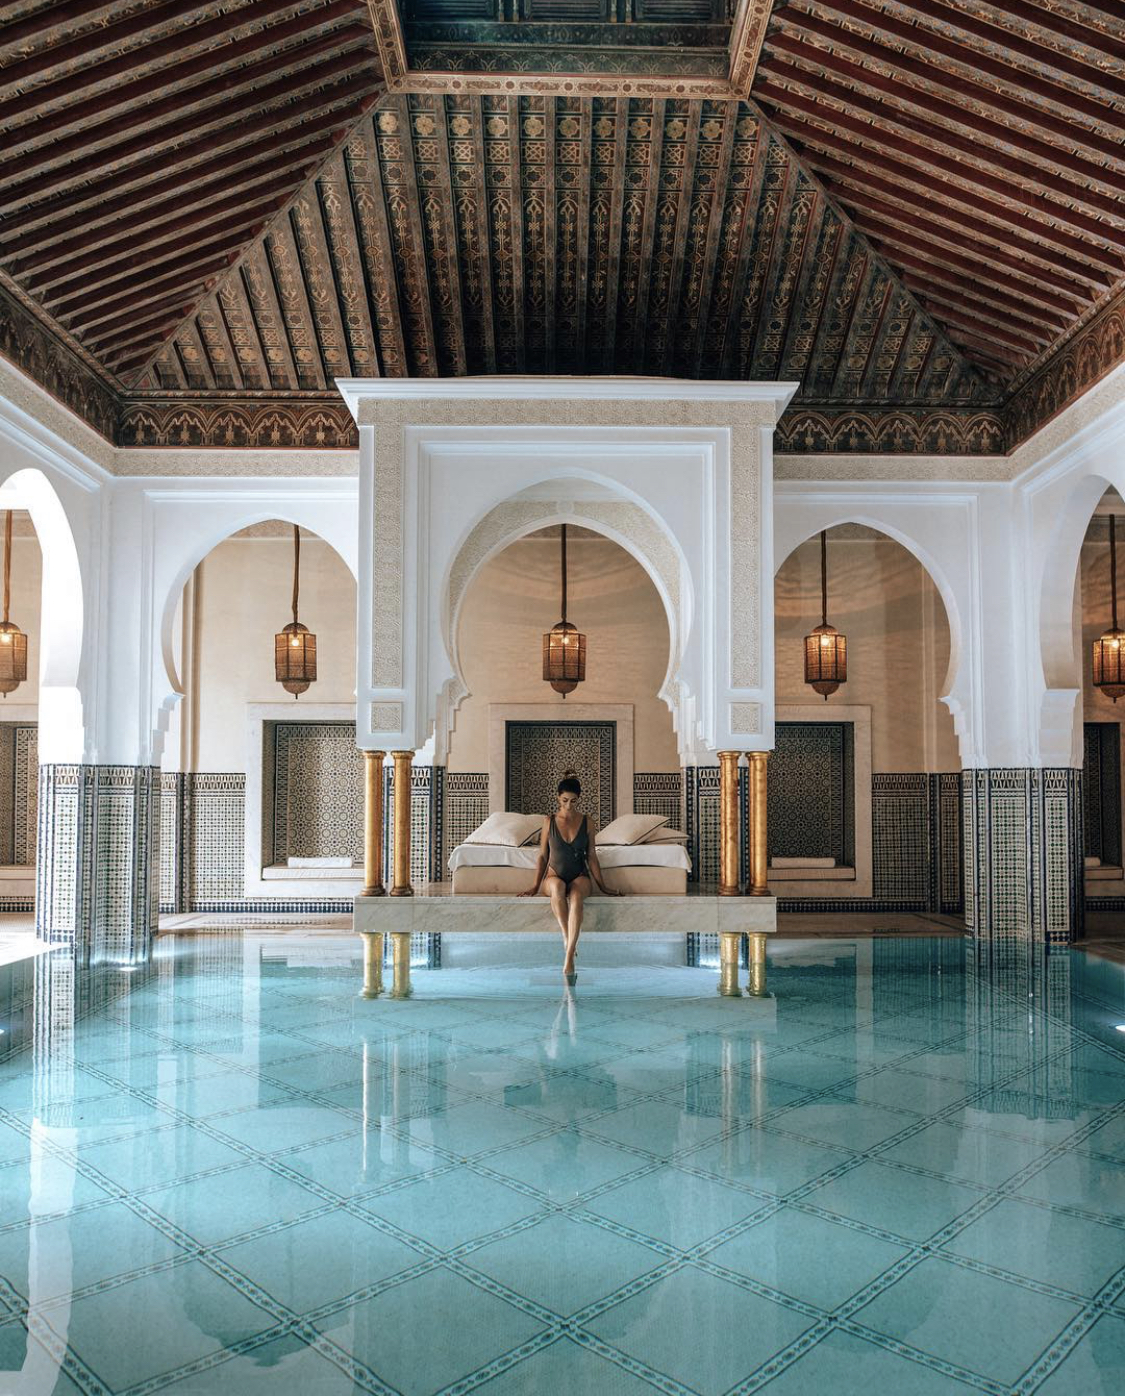 Lisa Homsy in the spa at a hotel in Marrakech Morocco